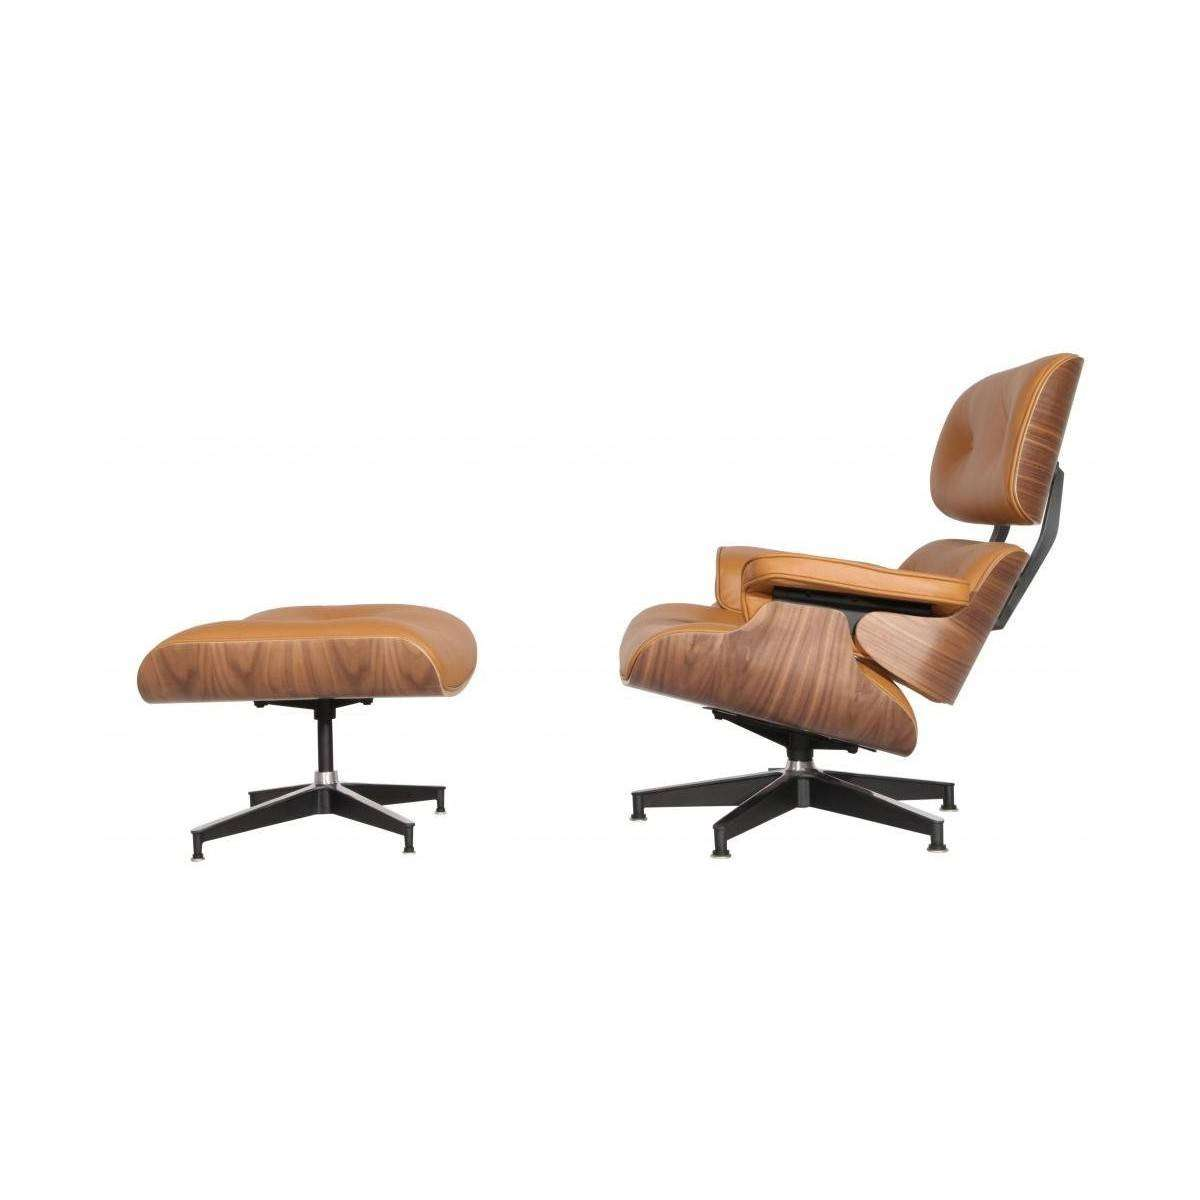 Fine Eames Lounge Chair Ottoman Replica Modterior Usa Machost Co Dining Chair Design Ideas Machostcouk